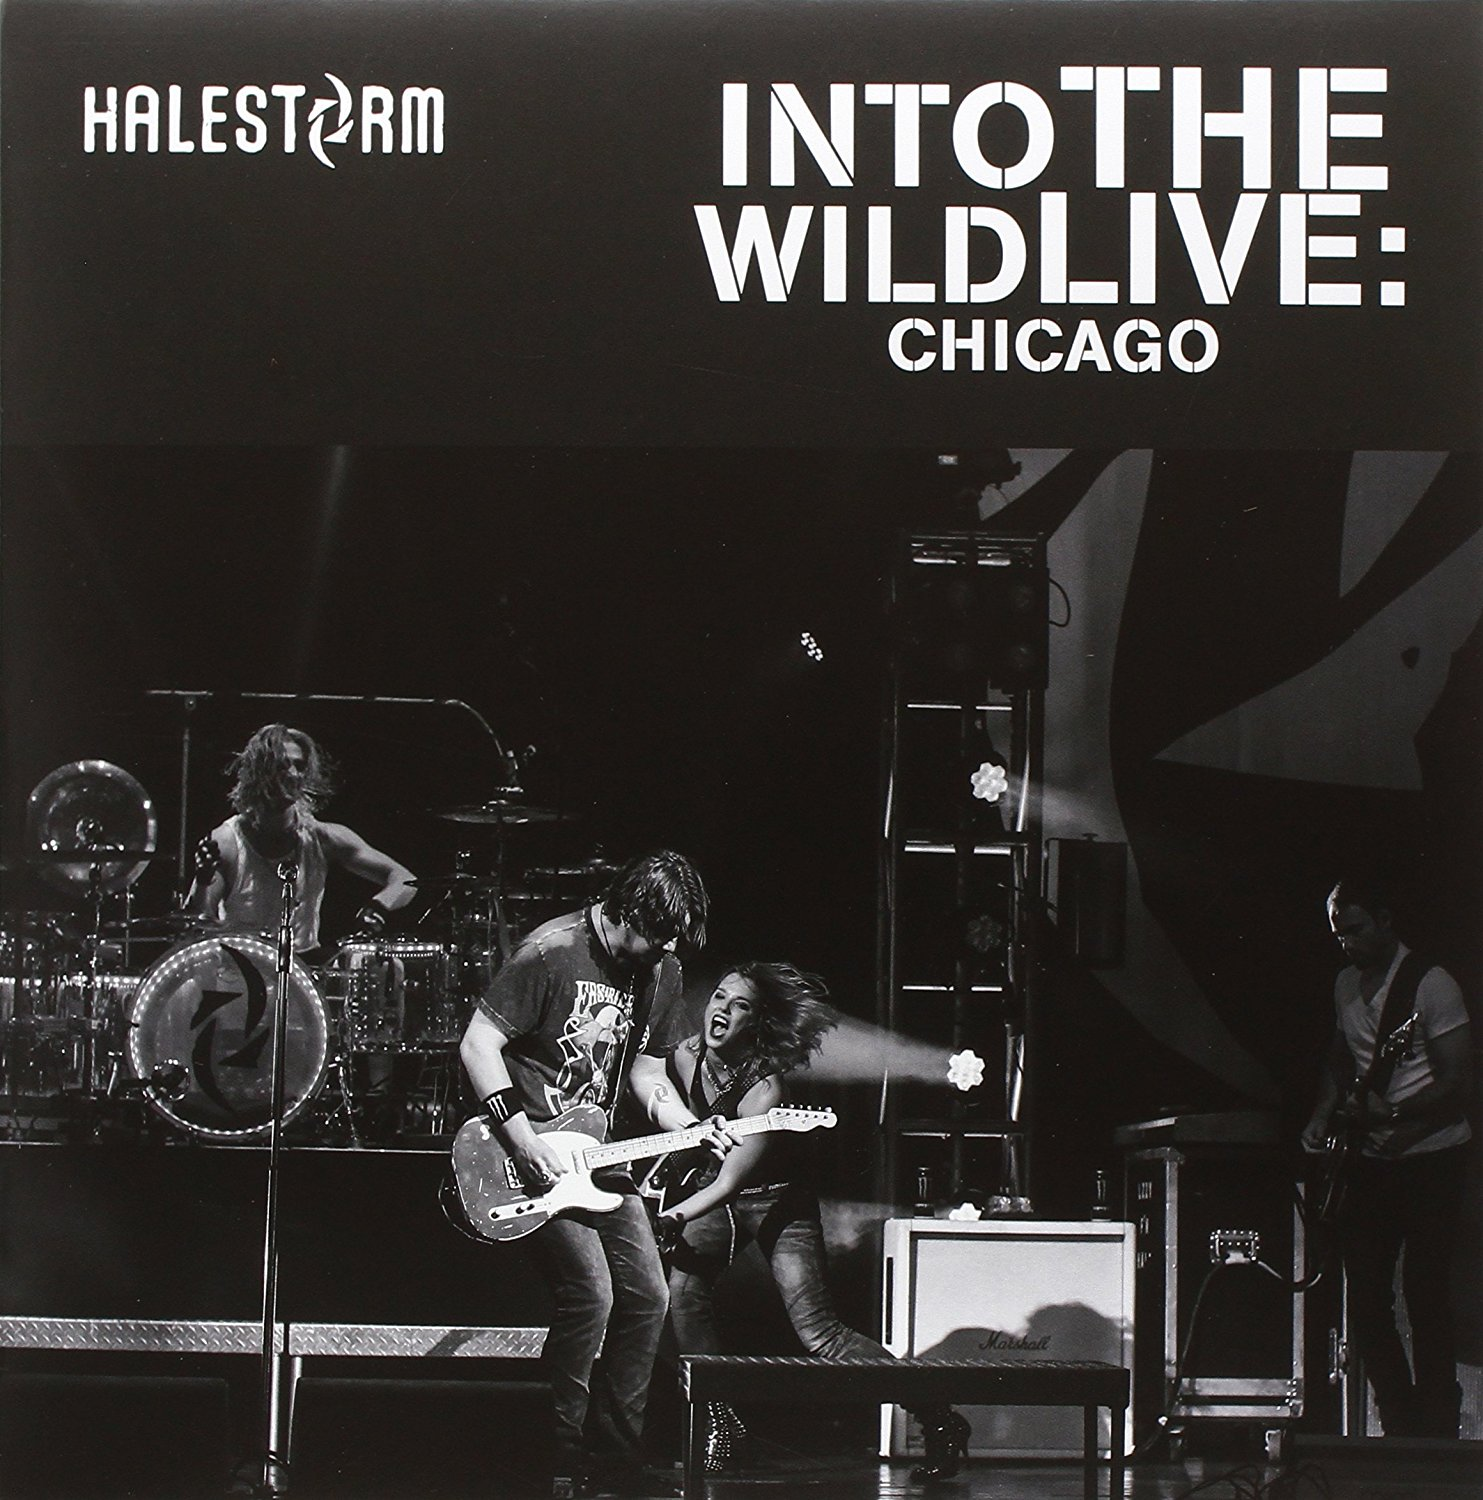 Halestorm - Into the Wild Live Chicago (2016 RSD) 10""